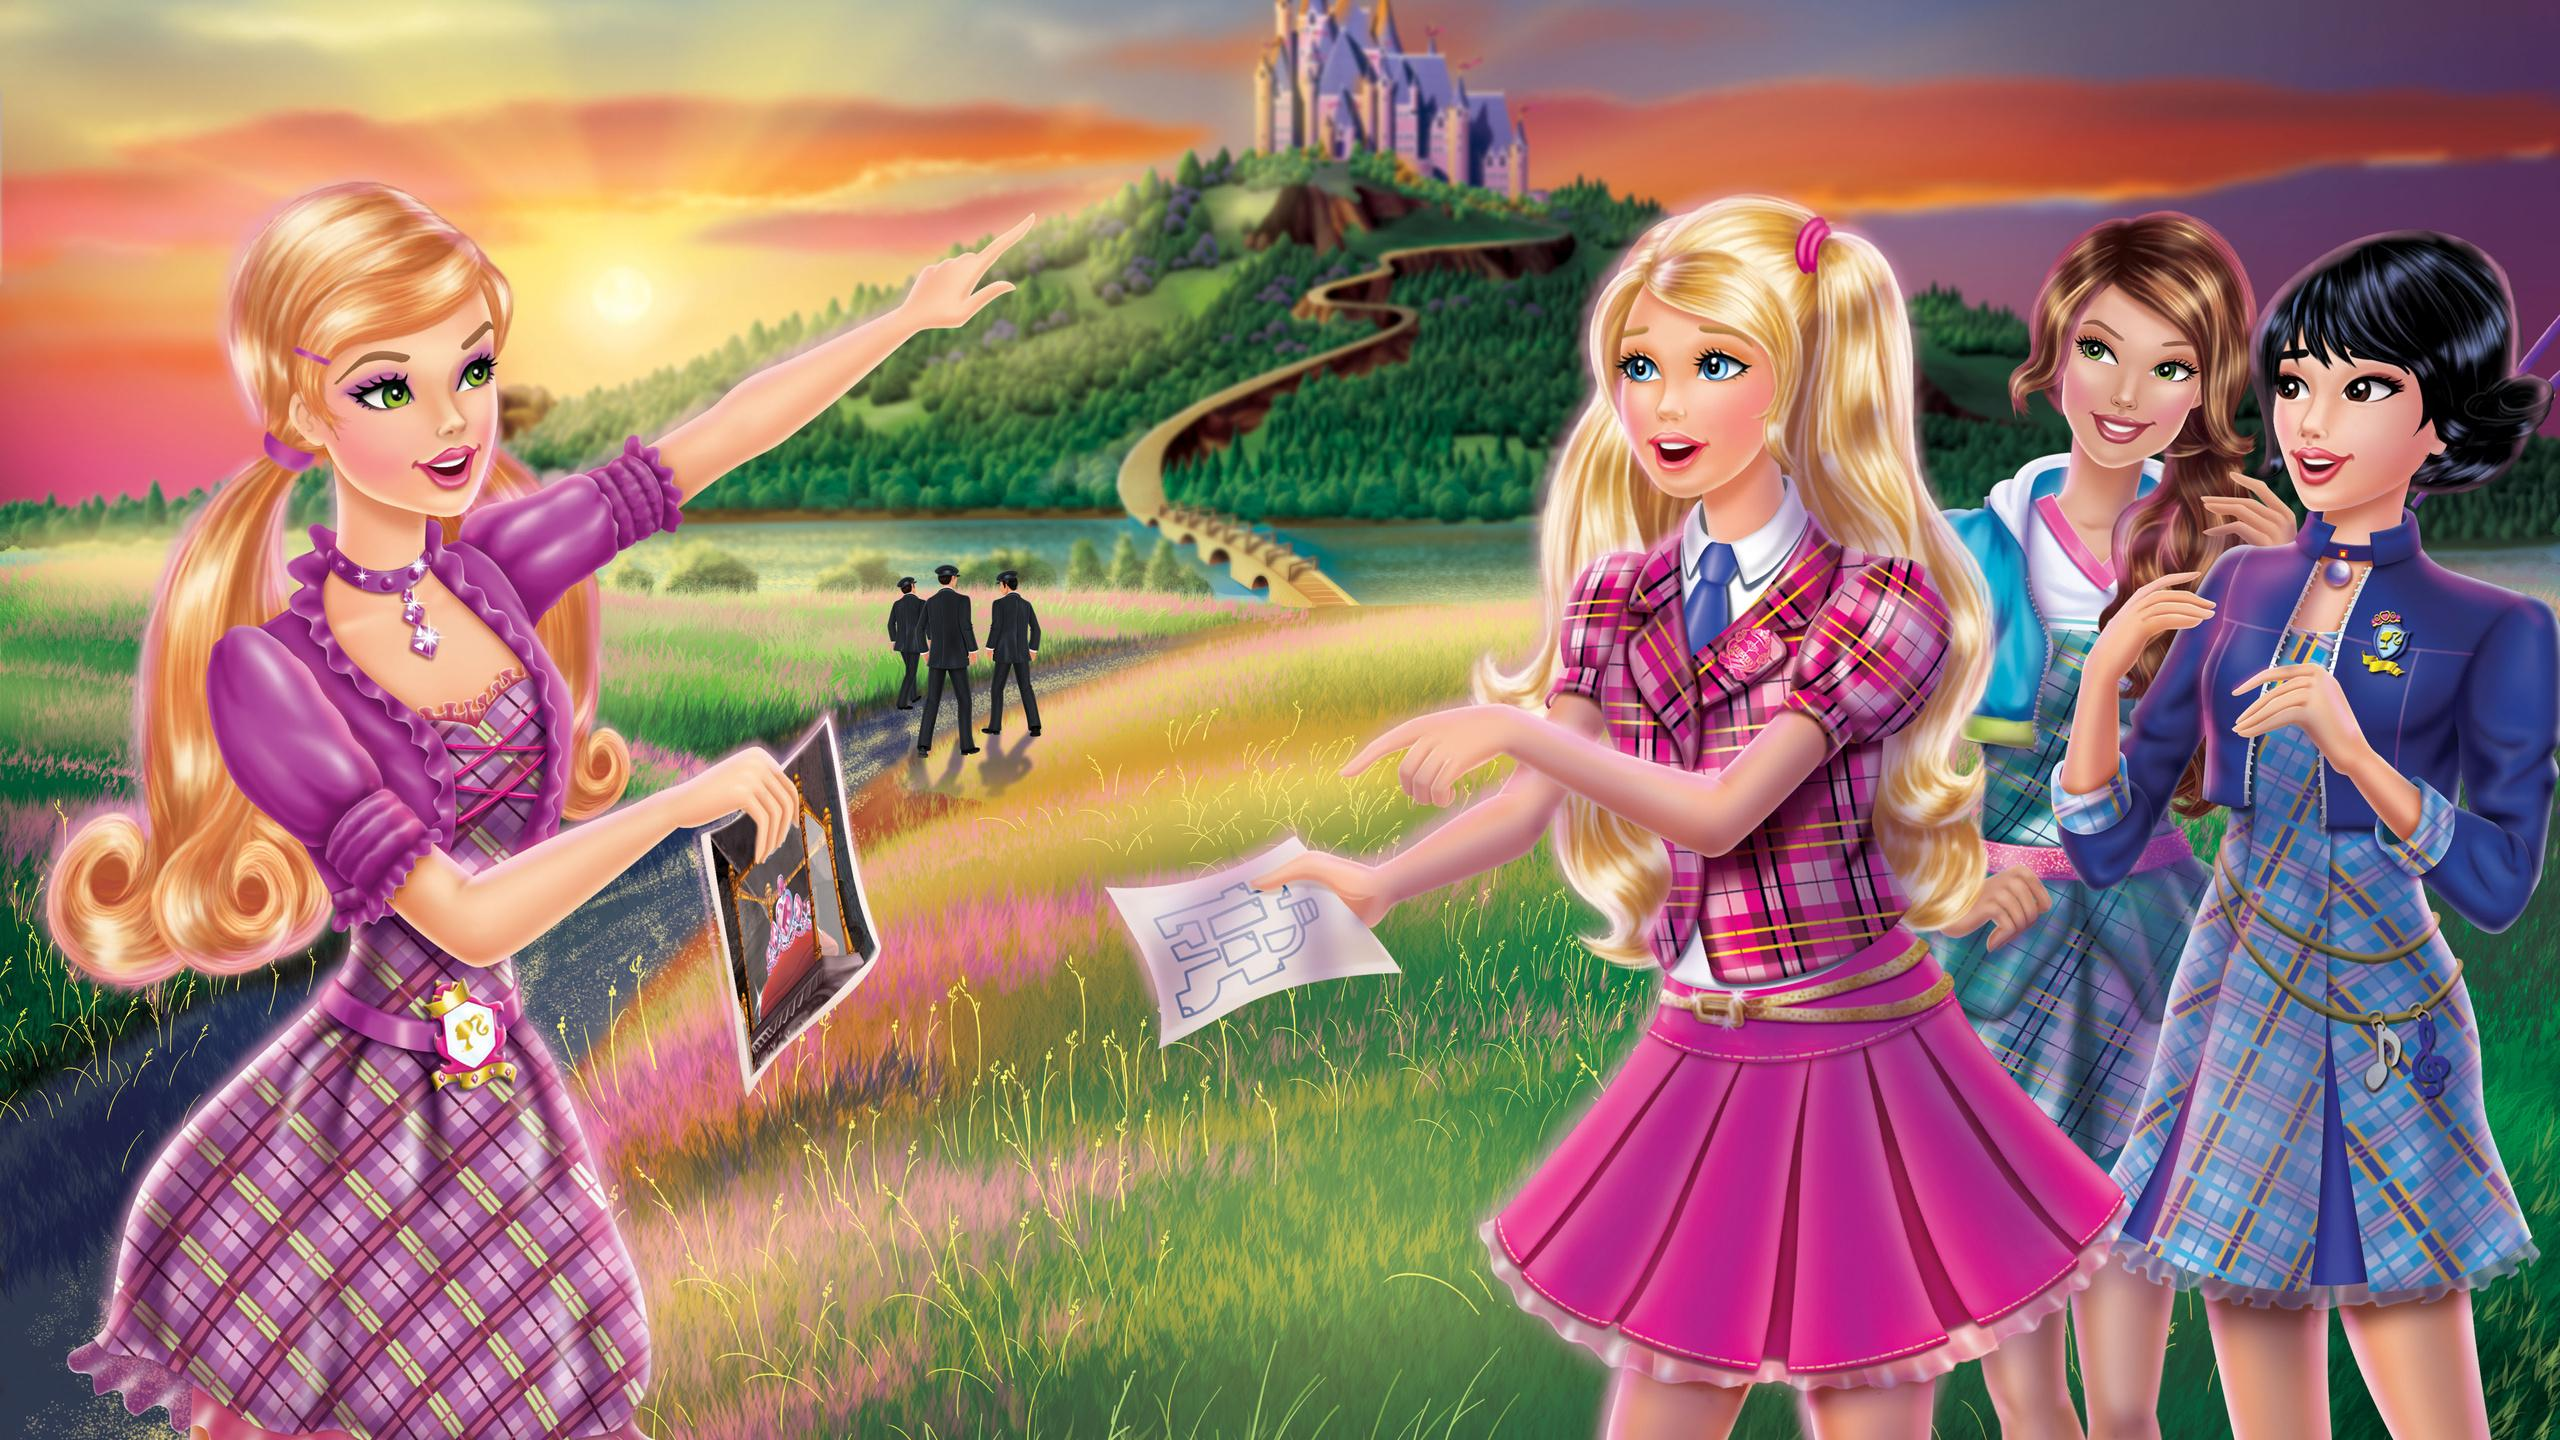 Barbie, Barbie Princess, Barbie Princess Charm School - Barbie And Charm School Princess , HD Wallpaper & Backgrounds